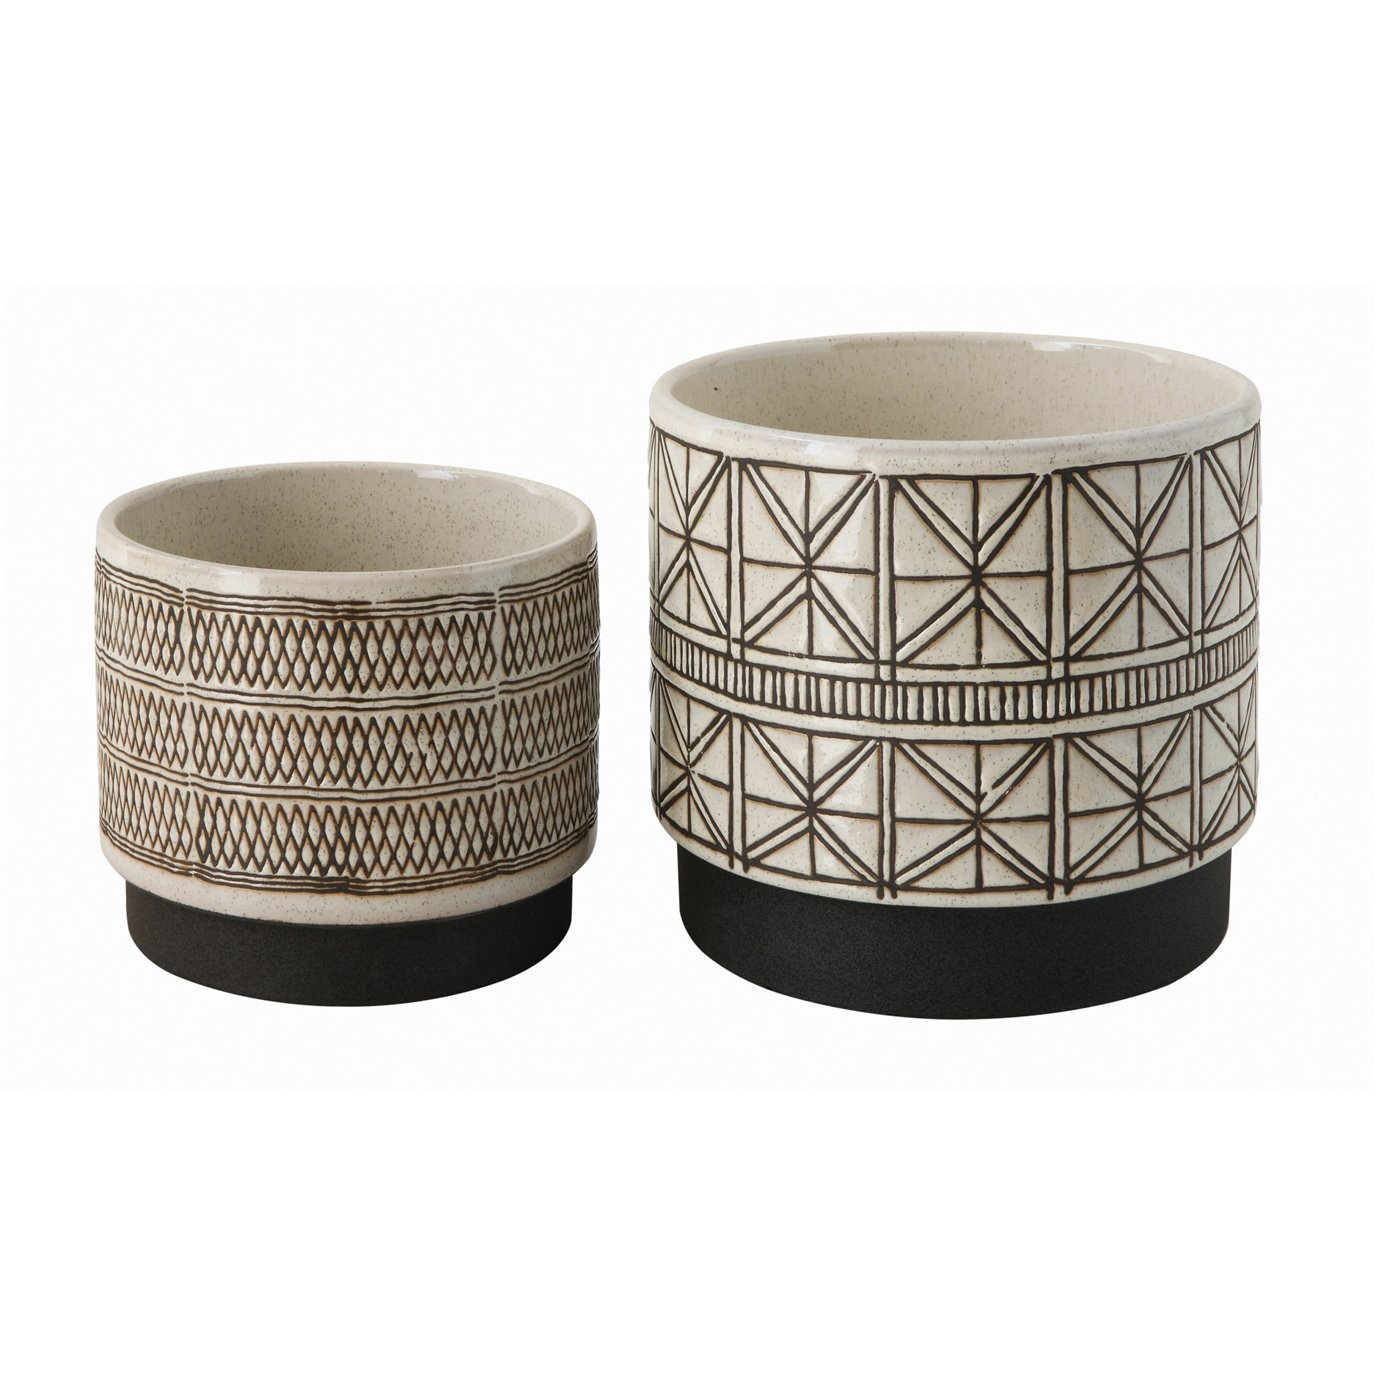 White Stoneware Planters with Black Designs (Set of 2 Designs)